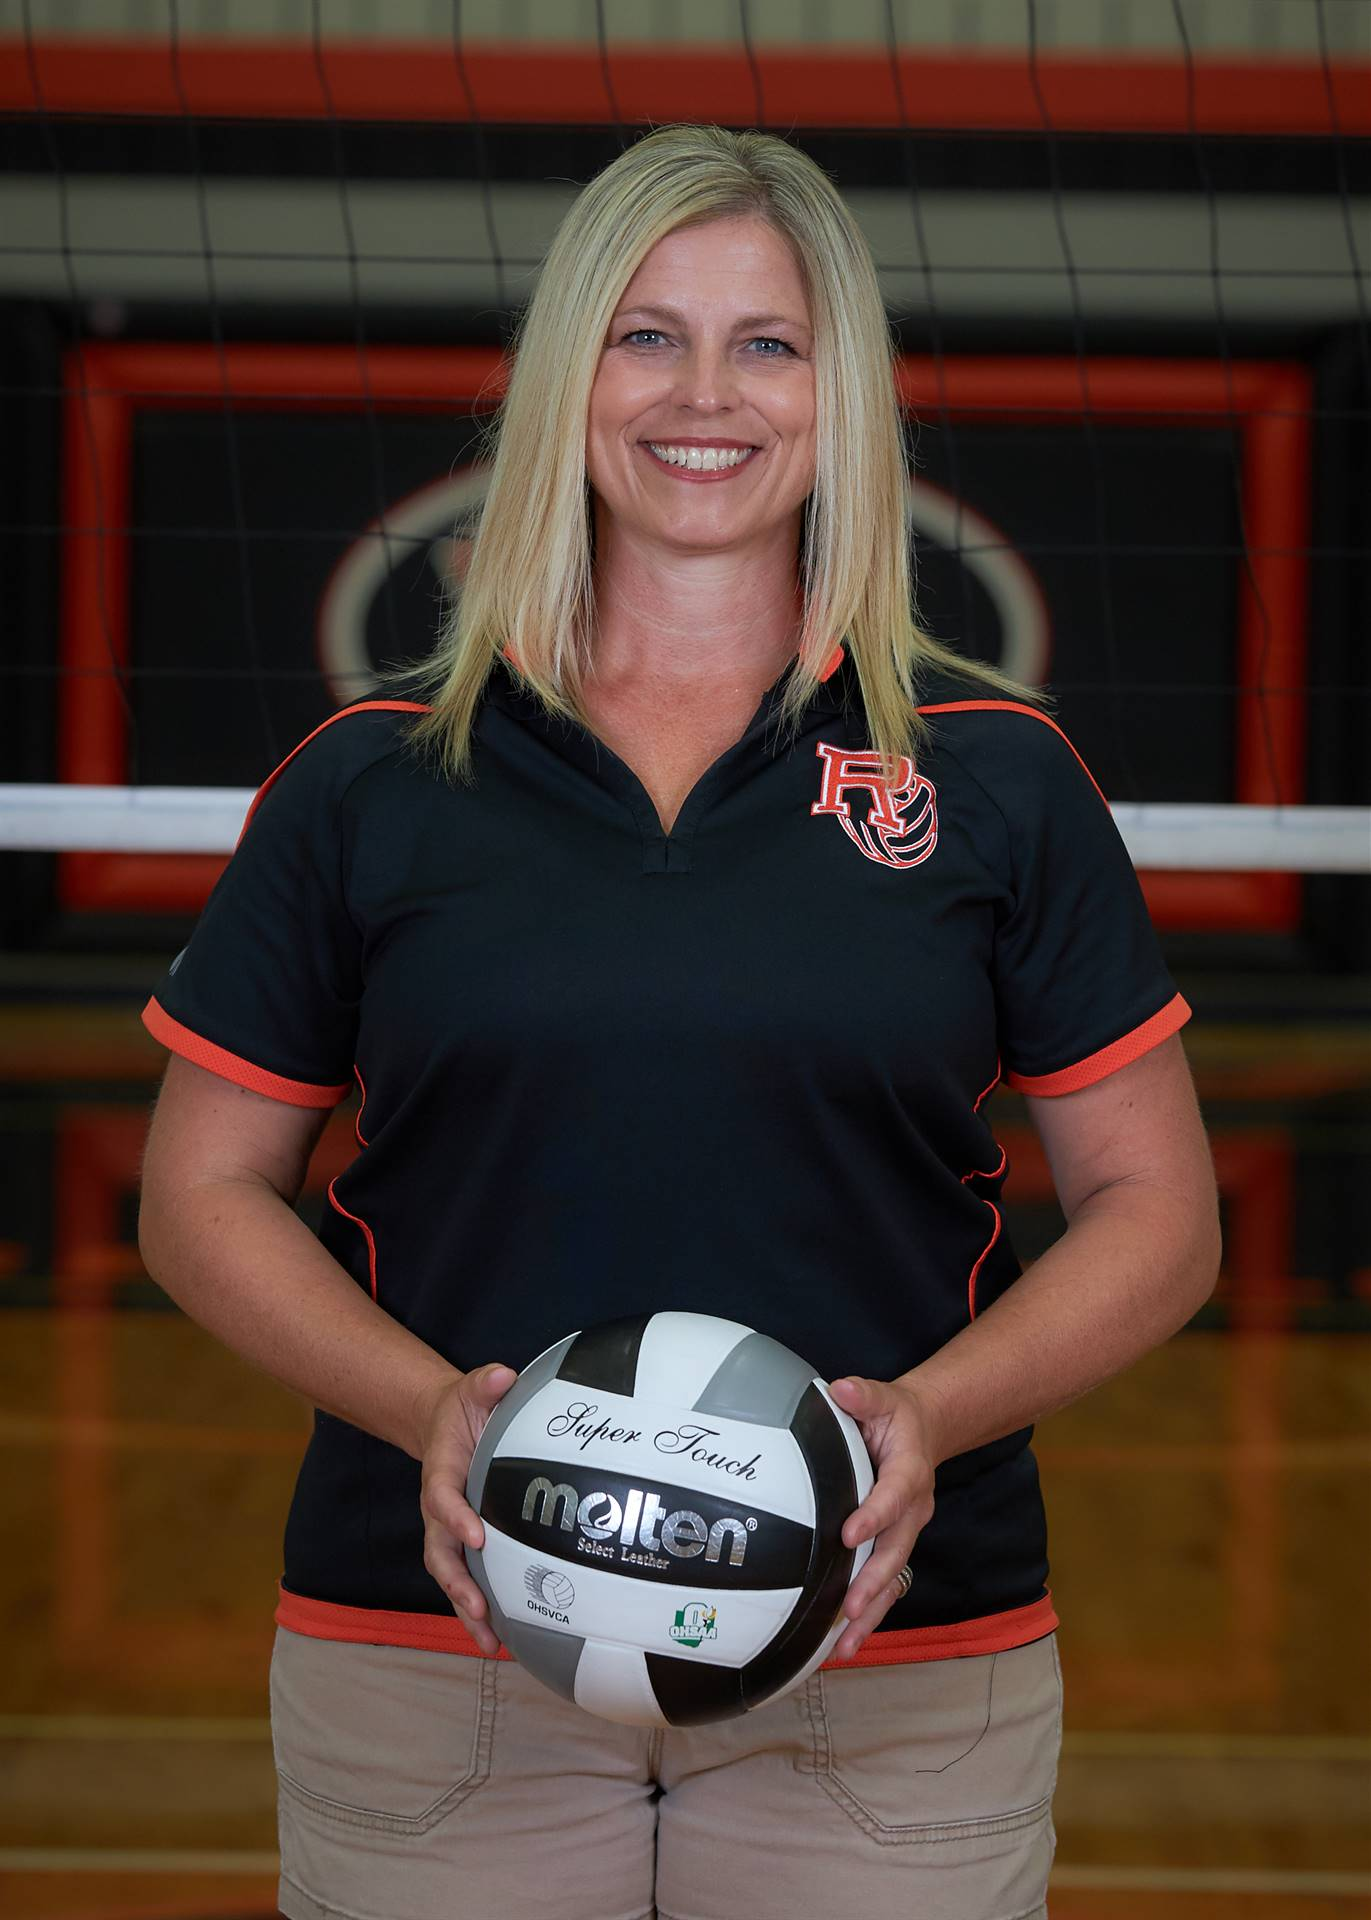 fall vb head coach